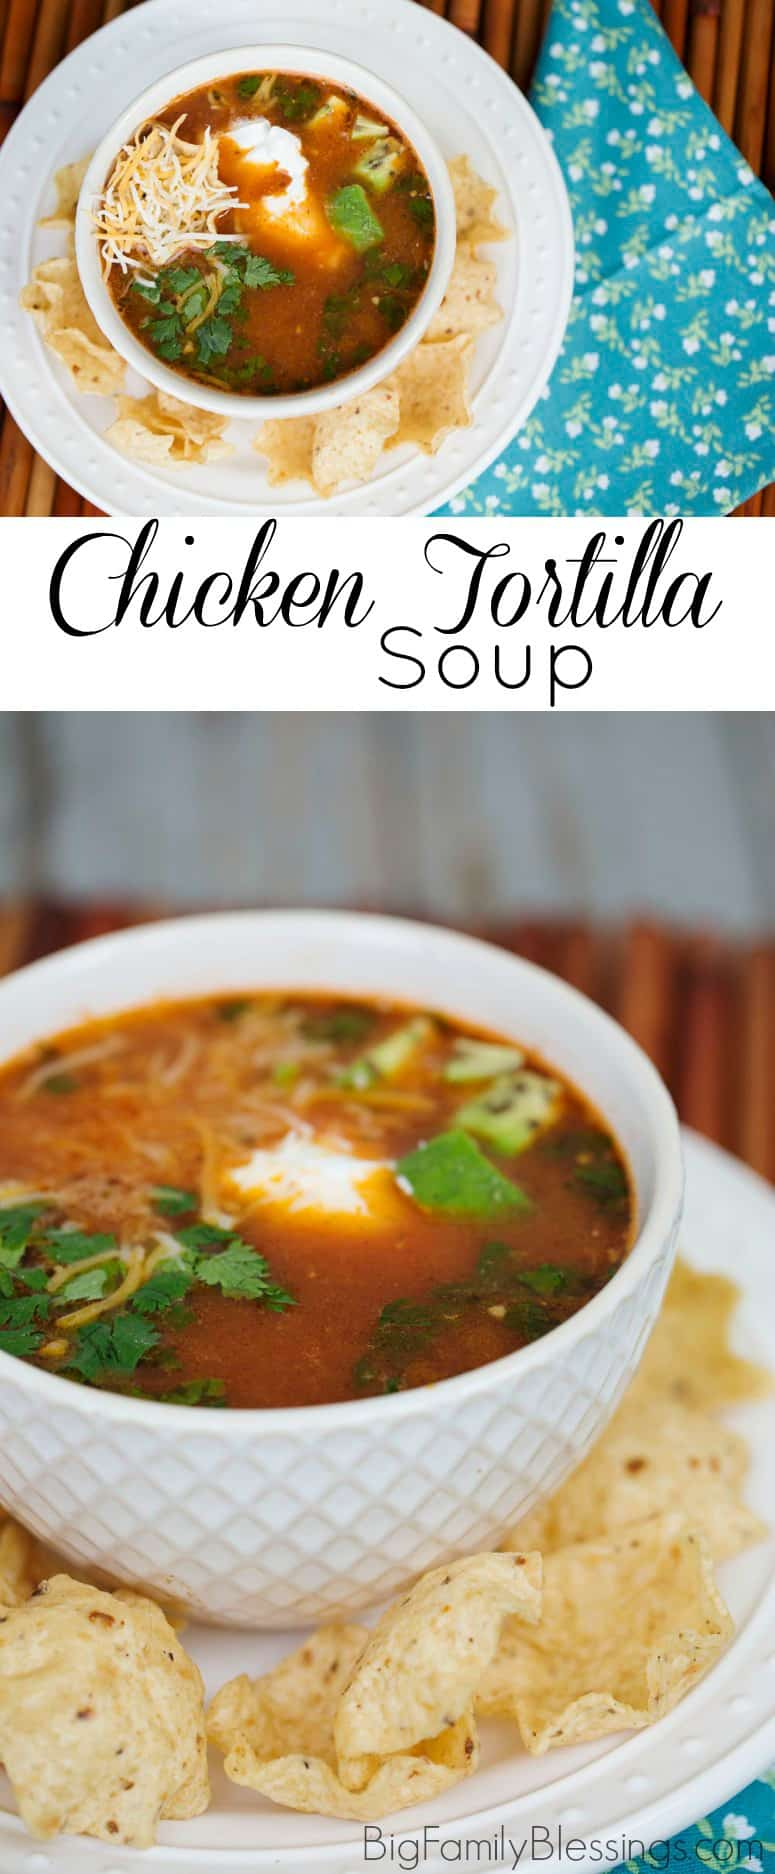 Not only is it super simple to cook, this Chicken Tortilla Soup tastes as good as any I've ever had at a restaurant!